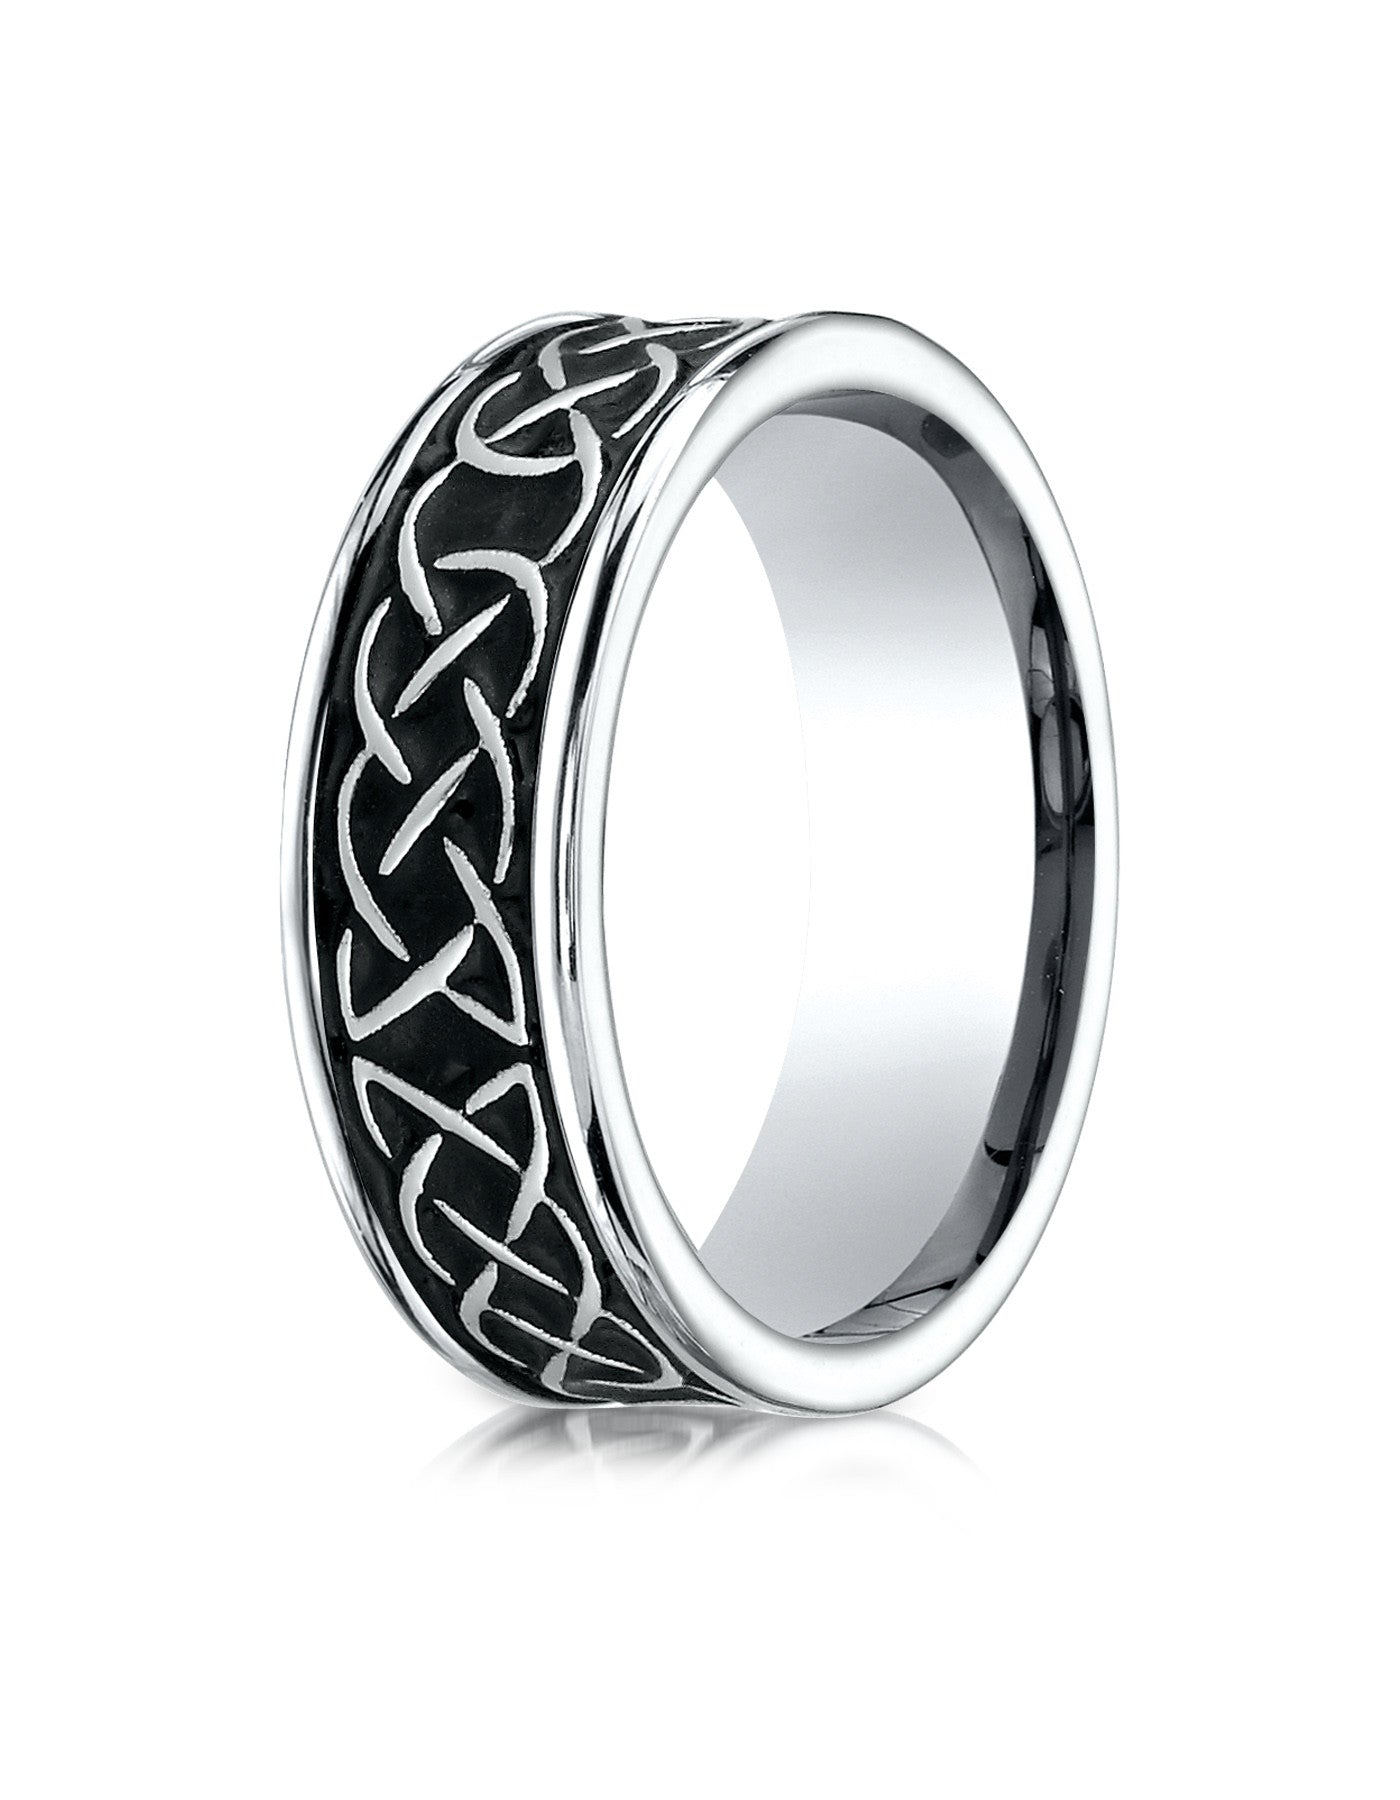 band home loading engraved cobalt dome xf motif wedding ring laser chrome zoom paisley rings